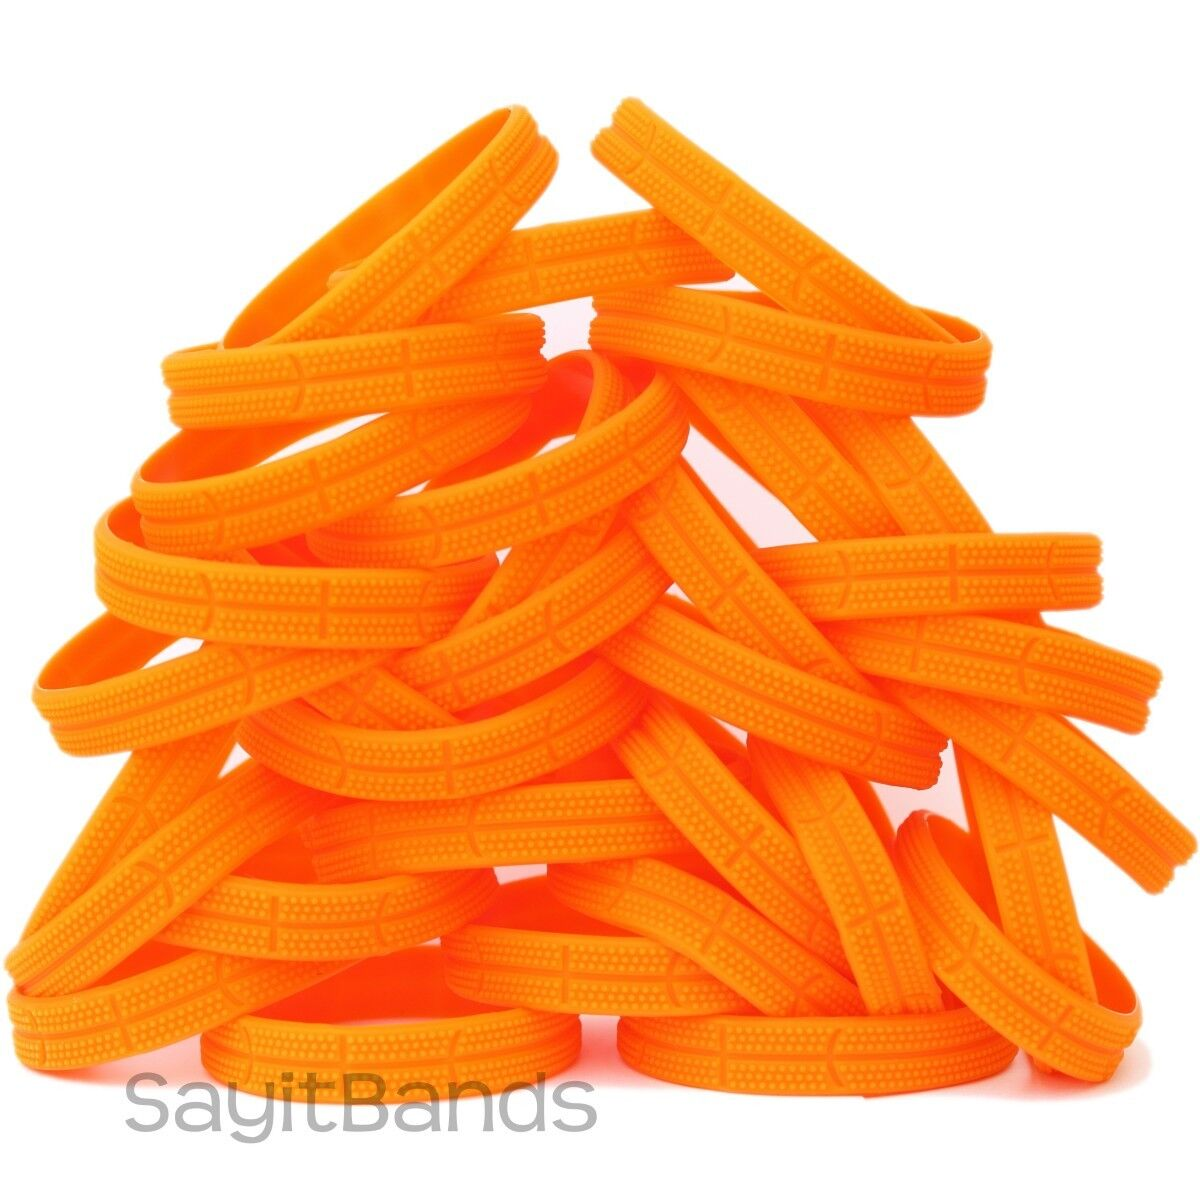 50 Basketball Wristbands - Great Silicone Bracelets with Hoops Ball Design